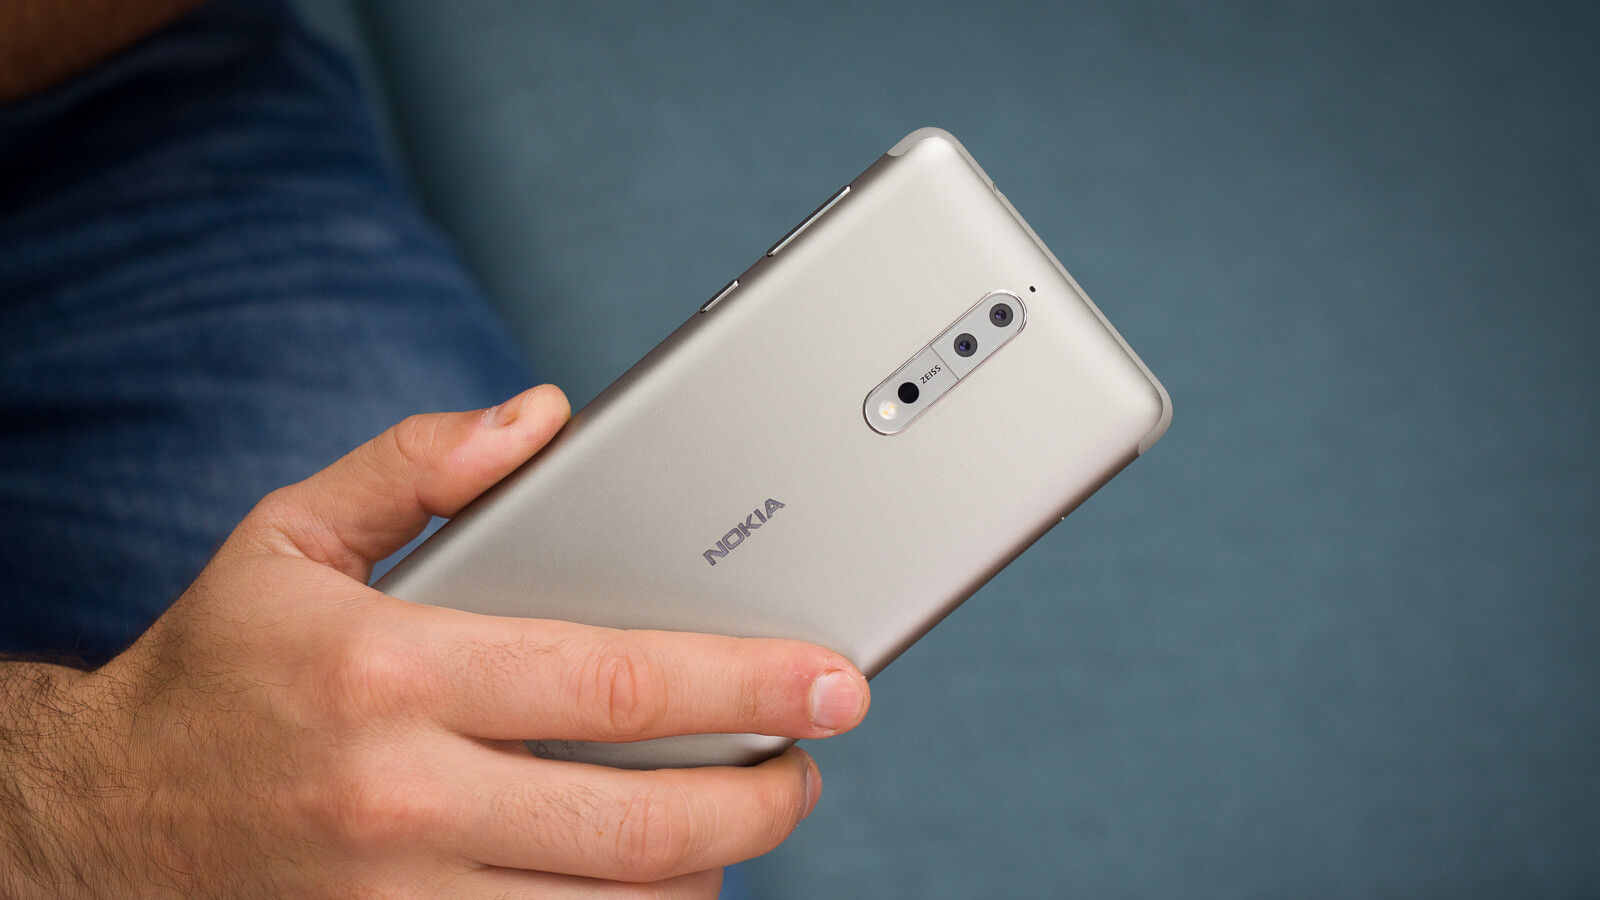 Nokia sold 4.4 million smartphones in Q4 2017, more than OnePlus, Google, HTC, Sony, and Lenovo